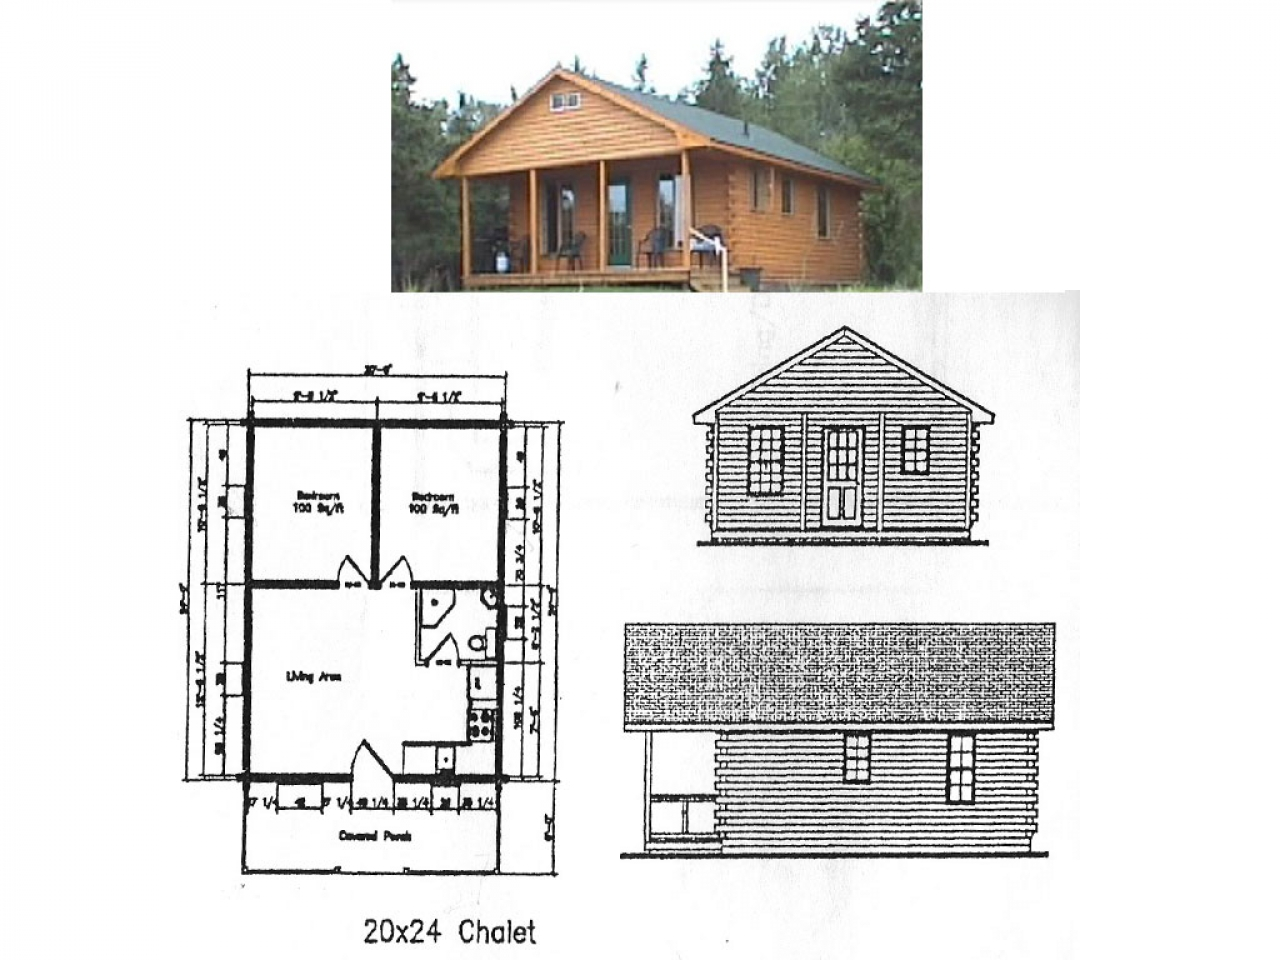 Chalet home floor plans mountain chalet house plans for Chalet modular home plans